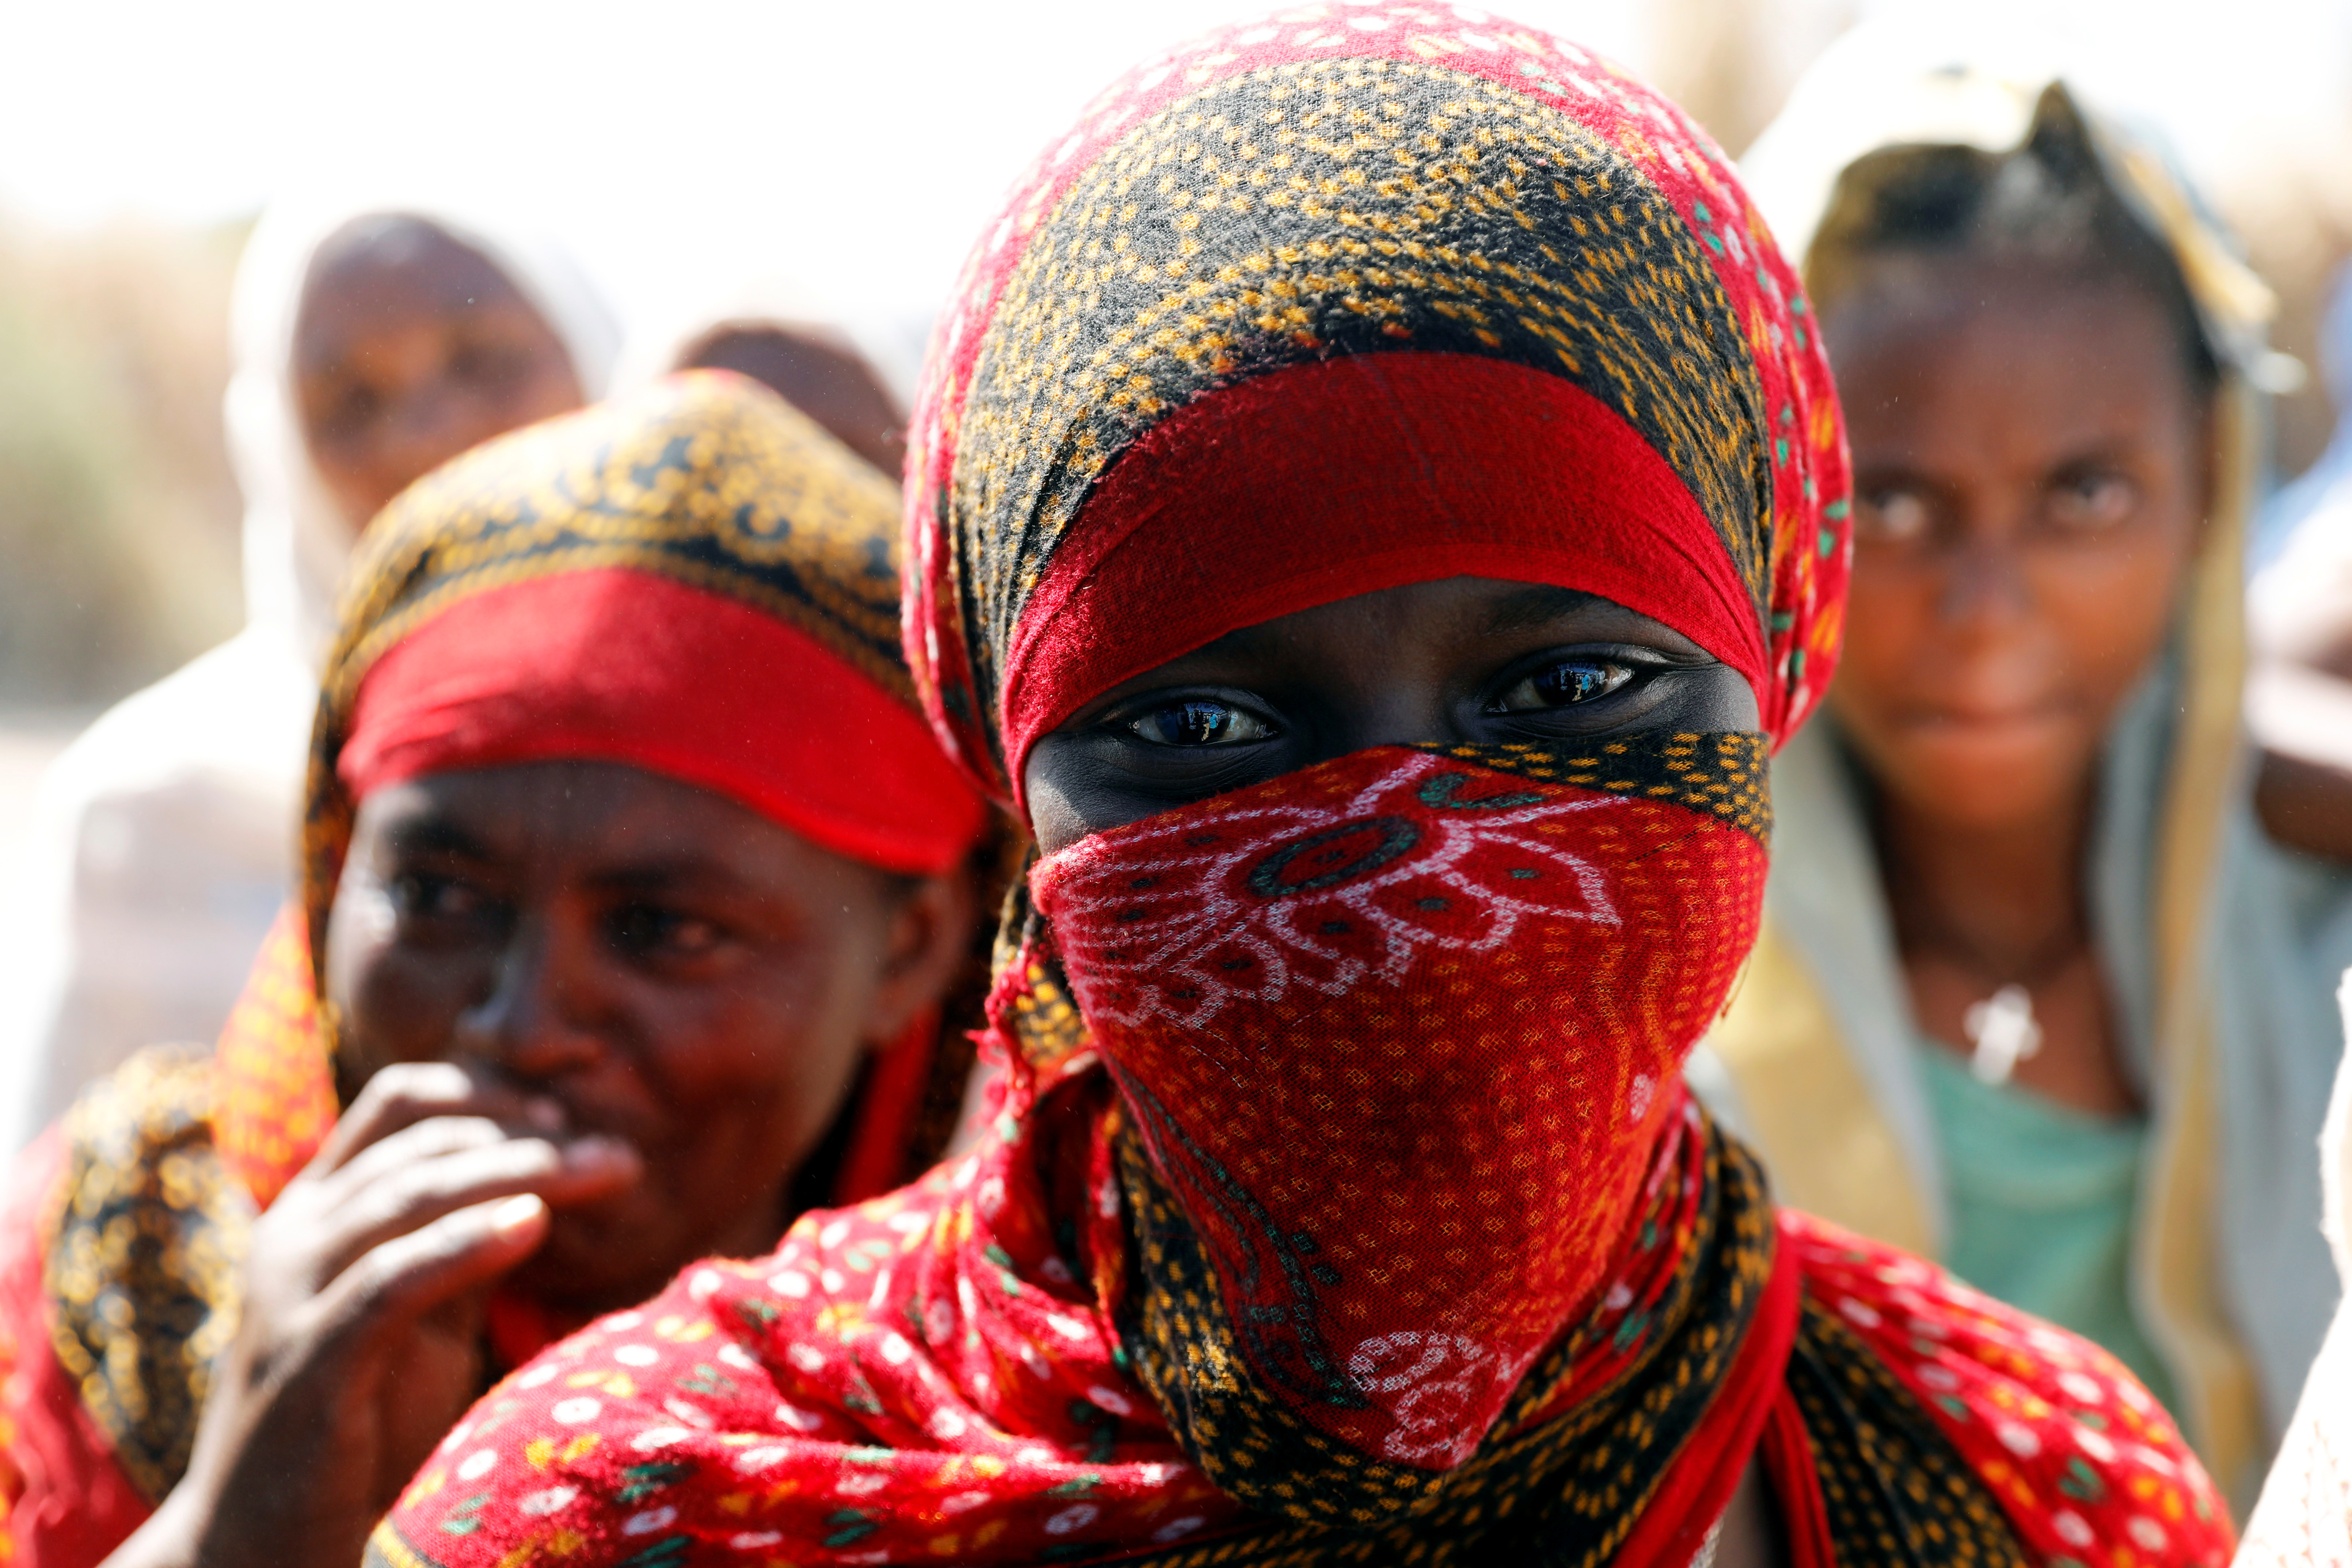 A woman is seen at the Um Rakuba refugee camp which houses Ethiopians fleeing the fighting in the Tigray region, on the the border in Sudan, December 3, 2020. Picture taken December 3, 2020. REUTERS/Baz Ratner